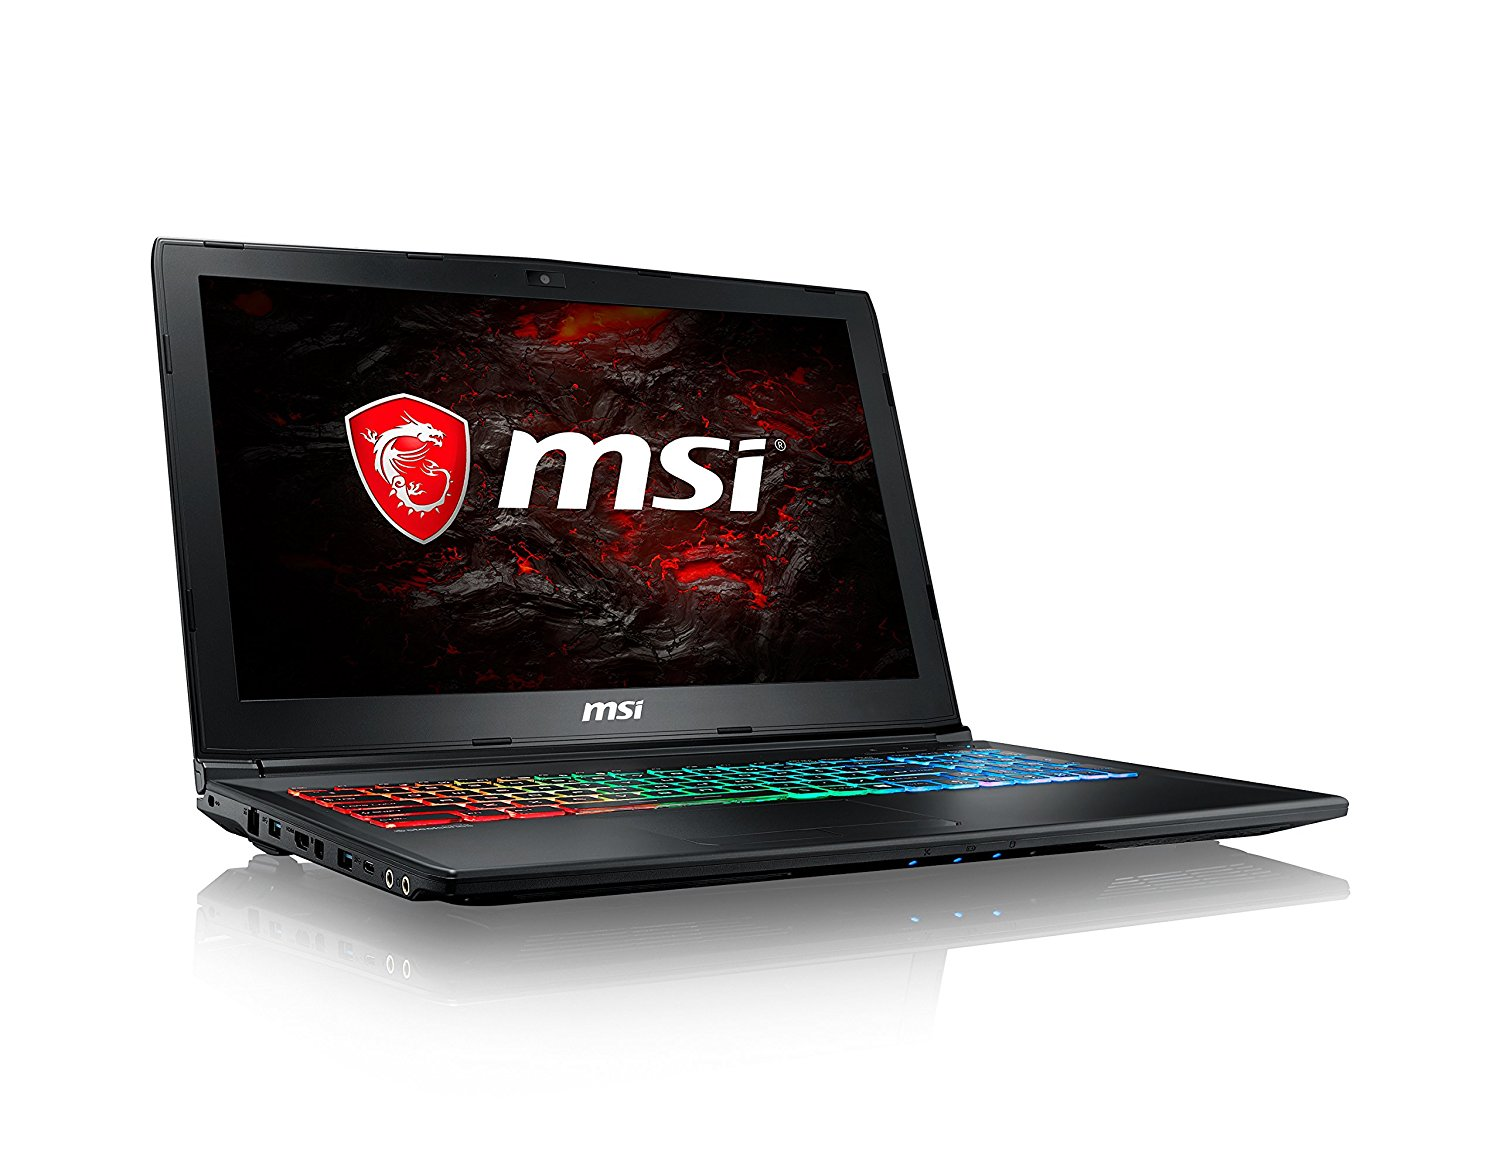 msi_gaming_laptopz